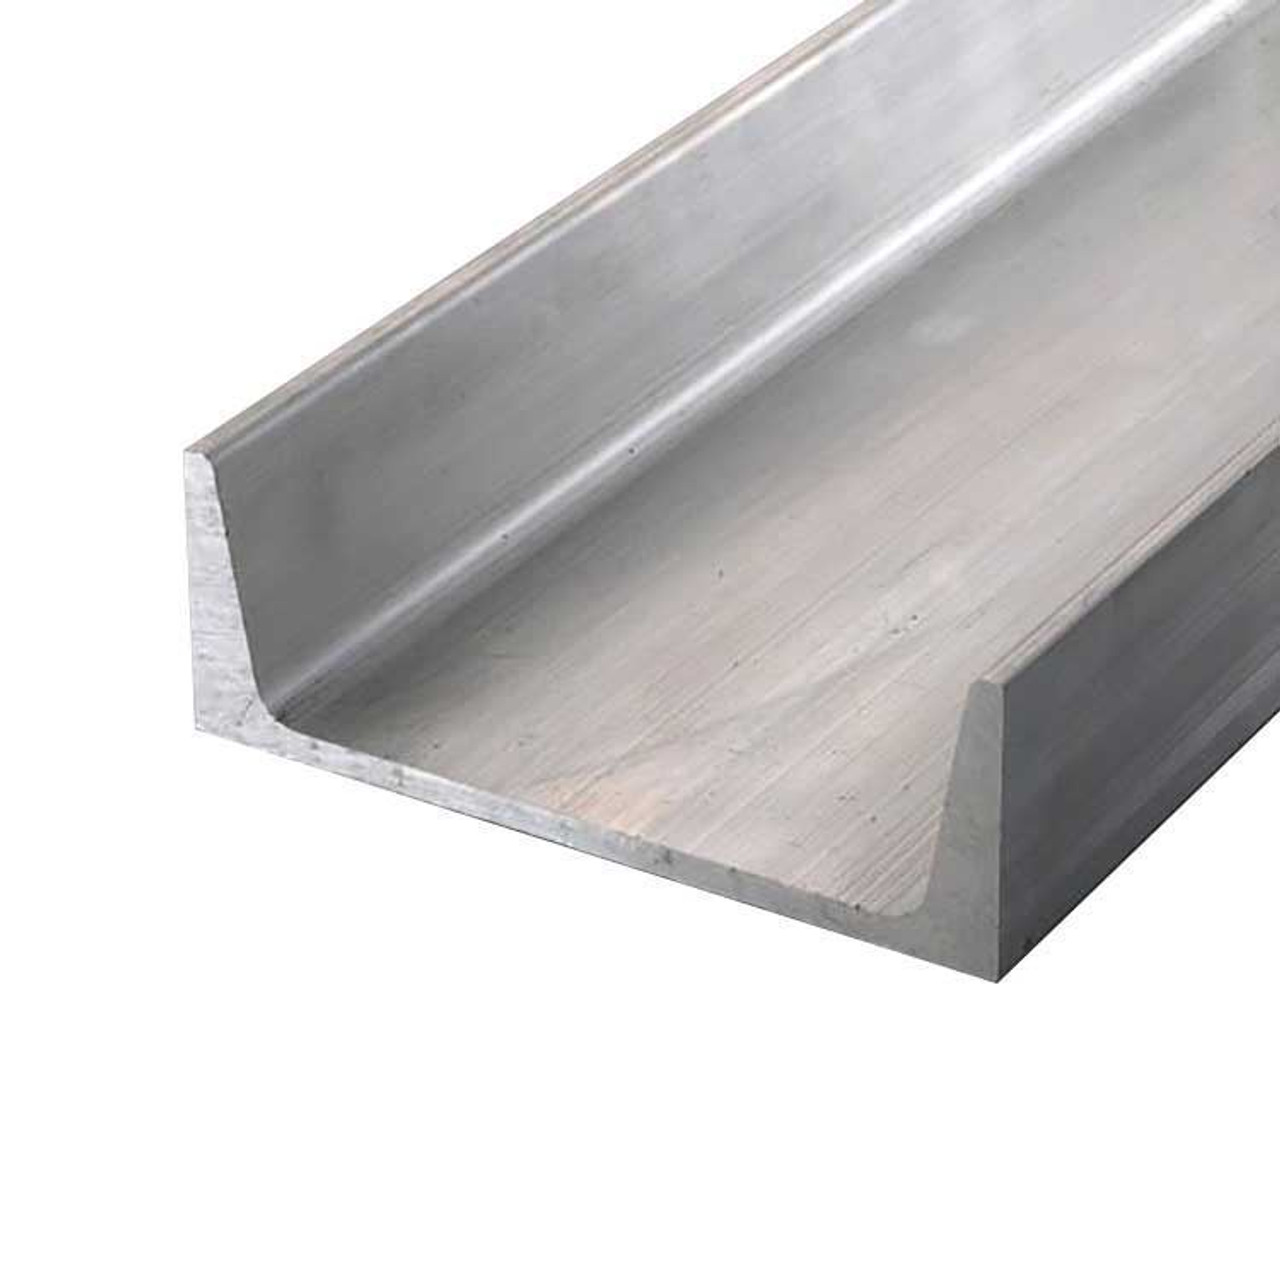 """6061-T6 Aluminum Channel, 9"""" x 2.65"""" x 12 inches"""